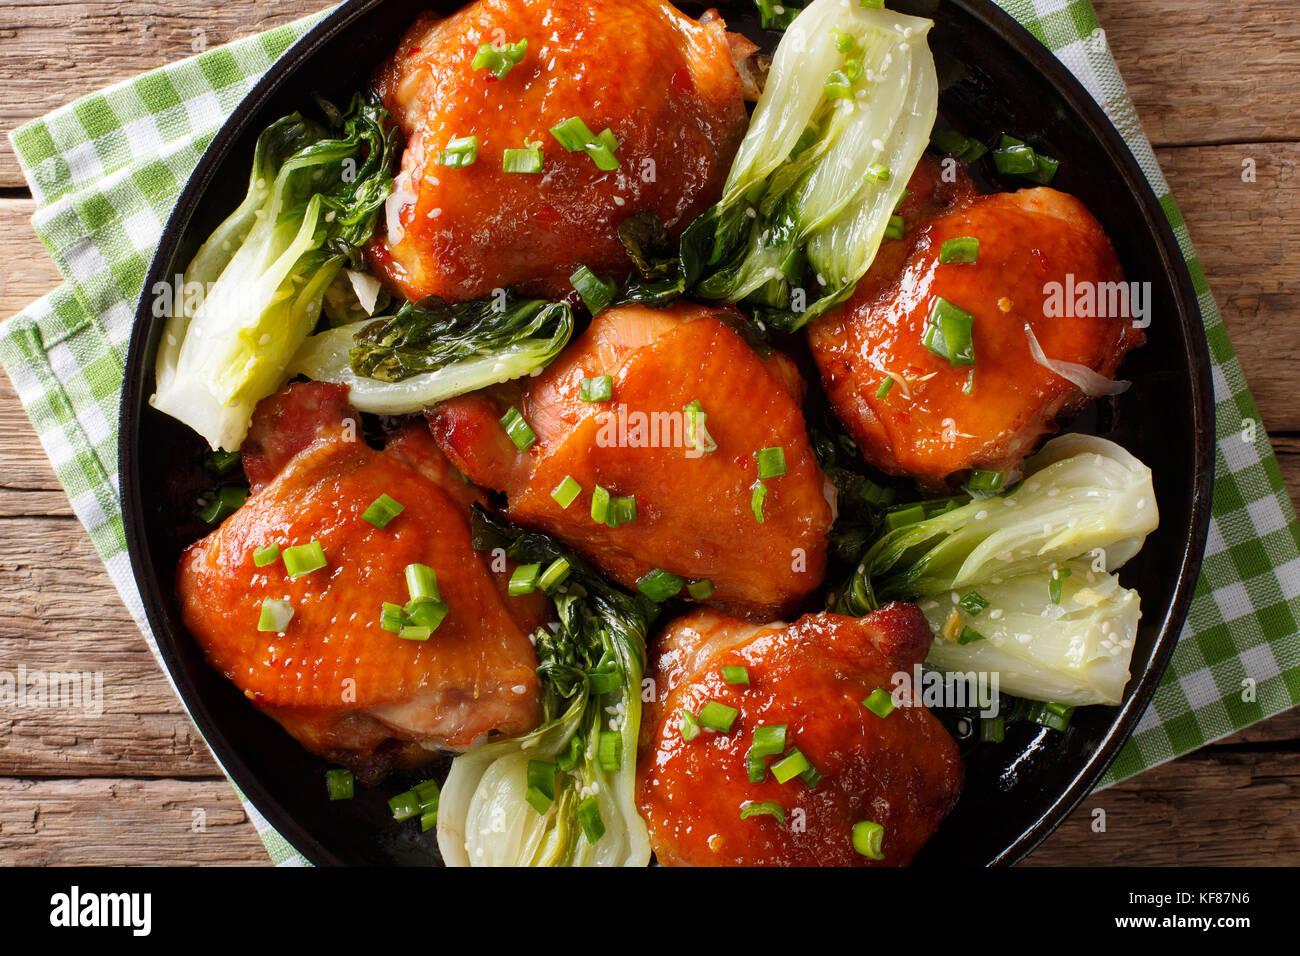 Fried chicken thighs with bok choy and green onions close-up on a plate. Horizontal top view from above - Stock Image